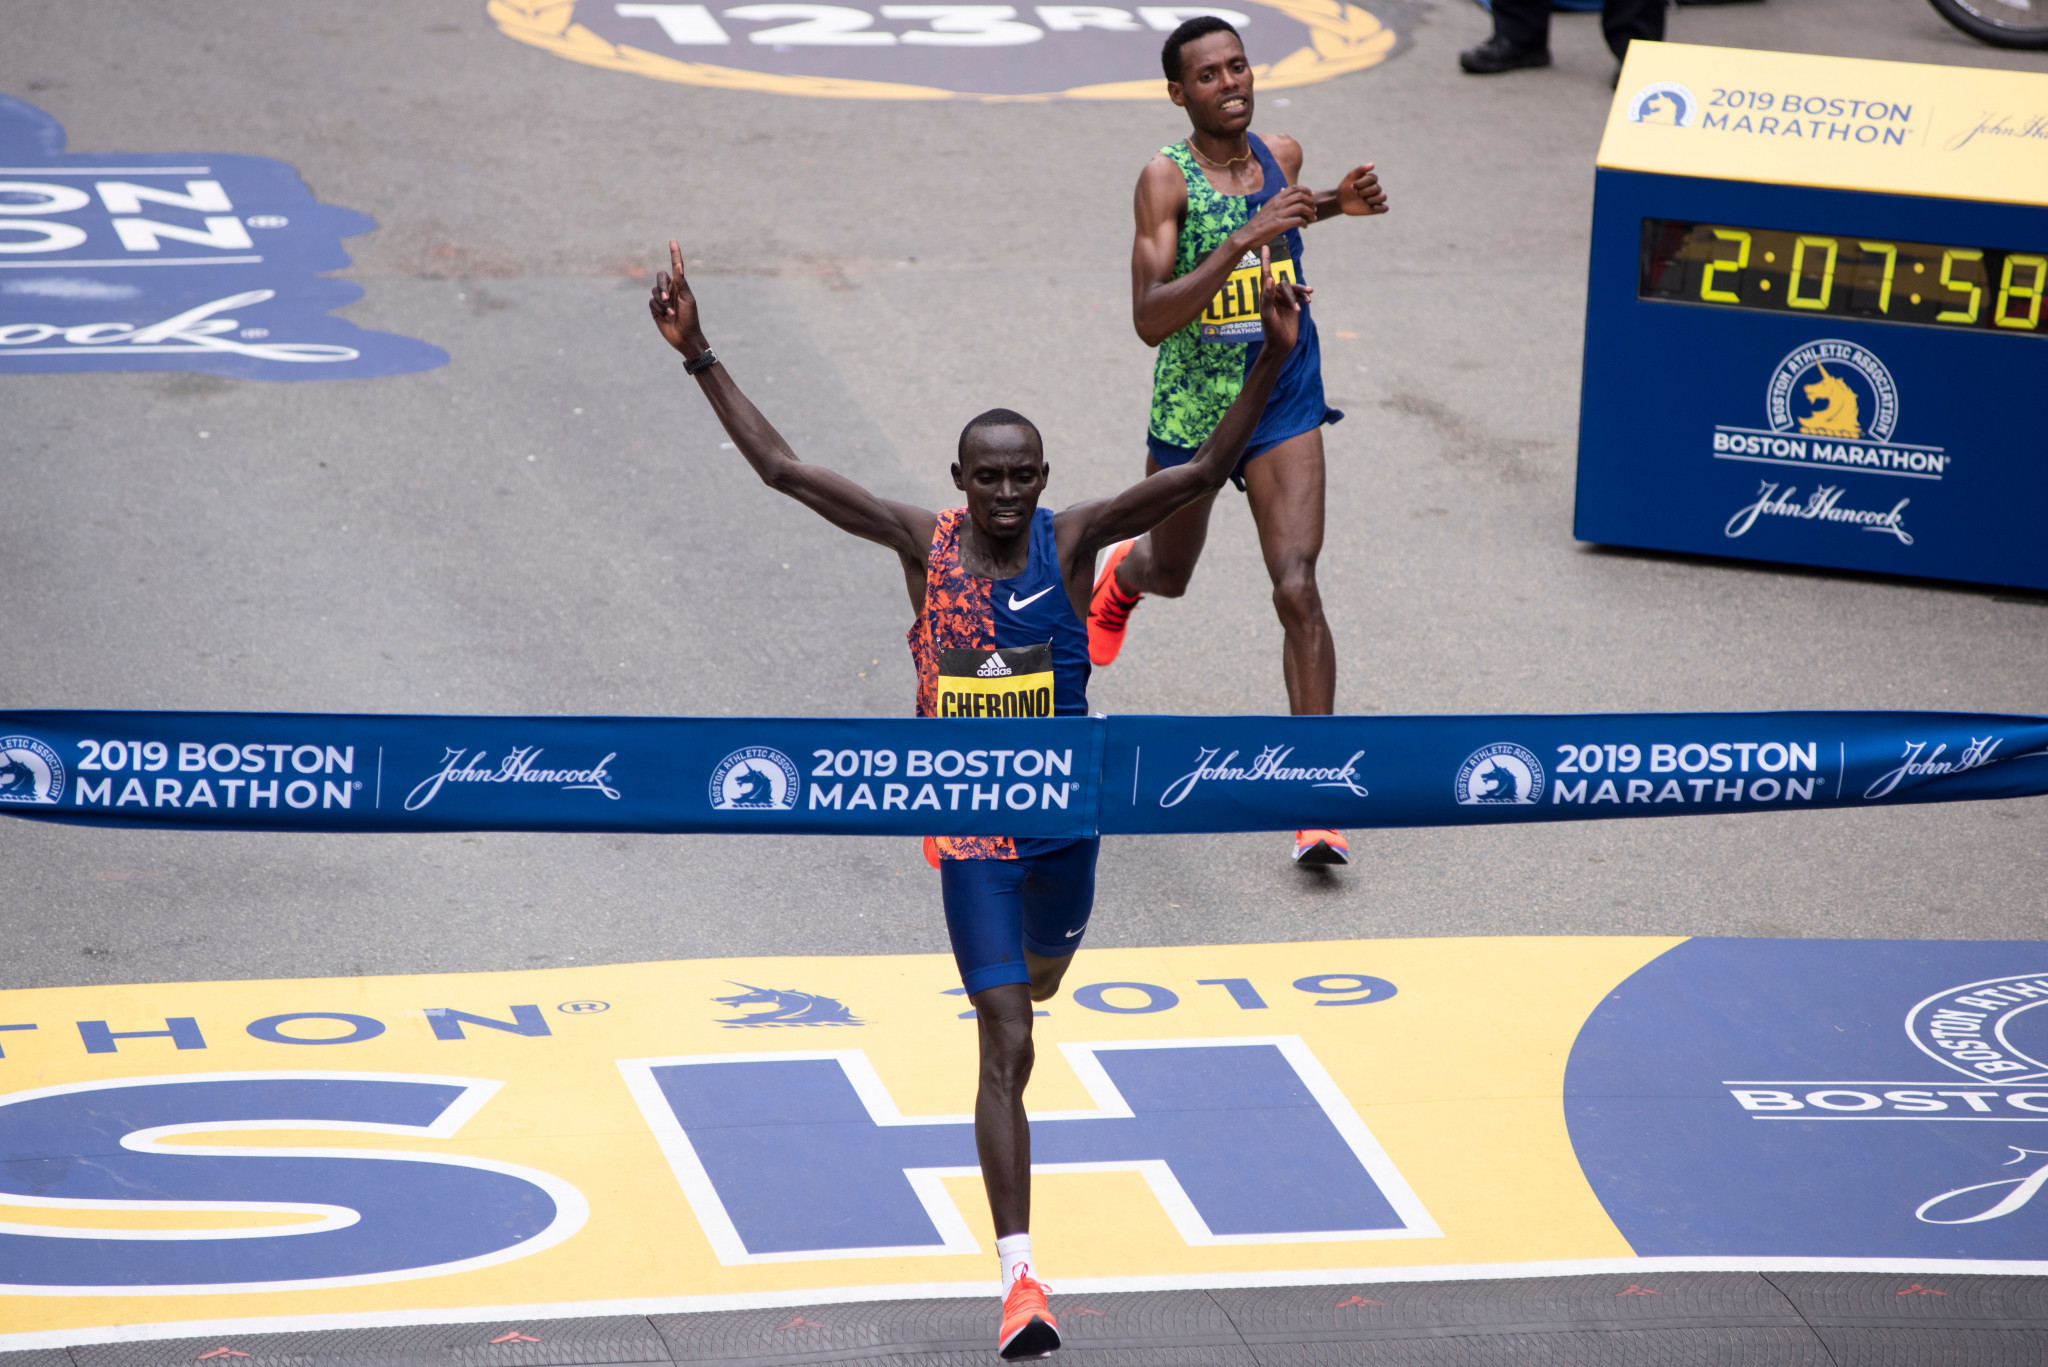 Kenya's Lawrence Cherono wins the Boston Marathon men's title by two seconds from Ethiopia's Lelisa Desisa ©Getty Images